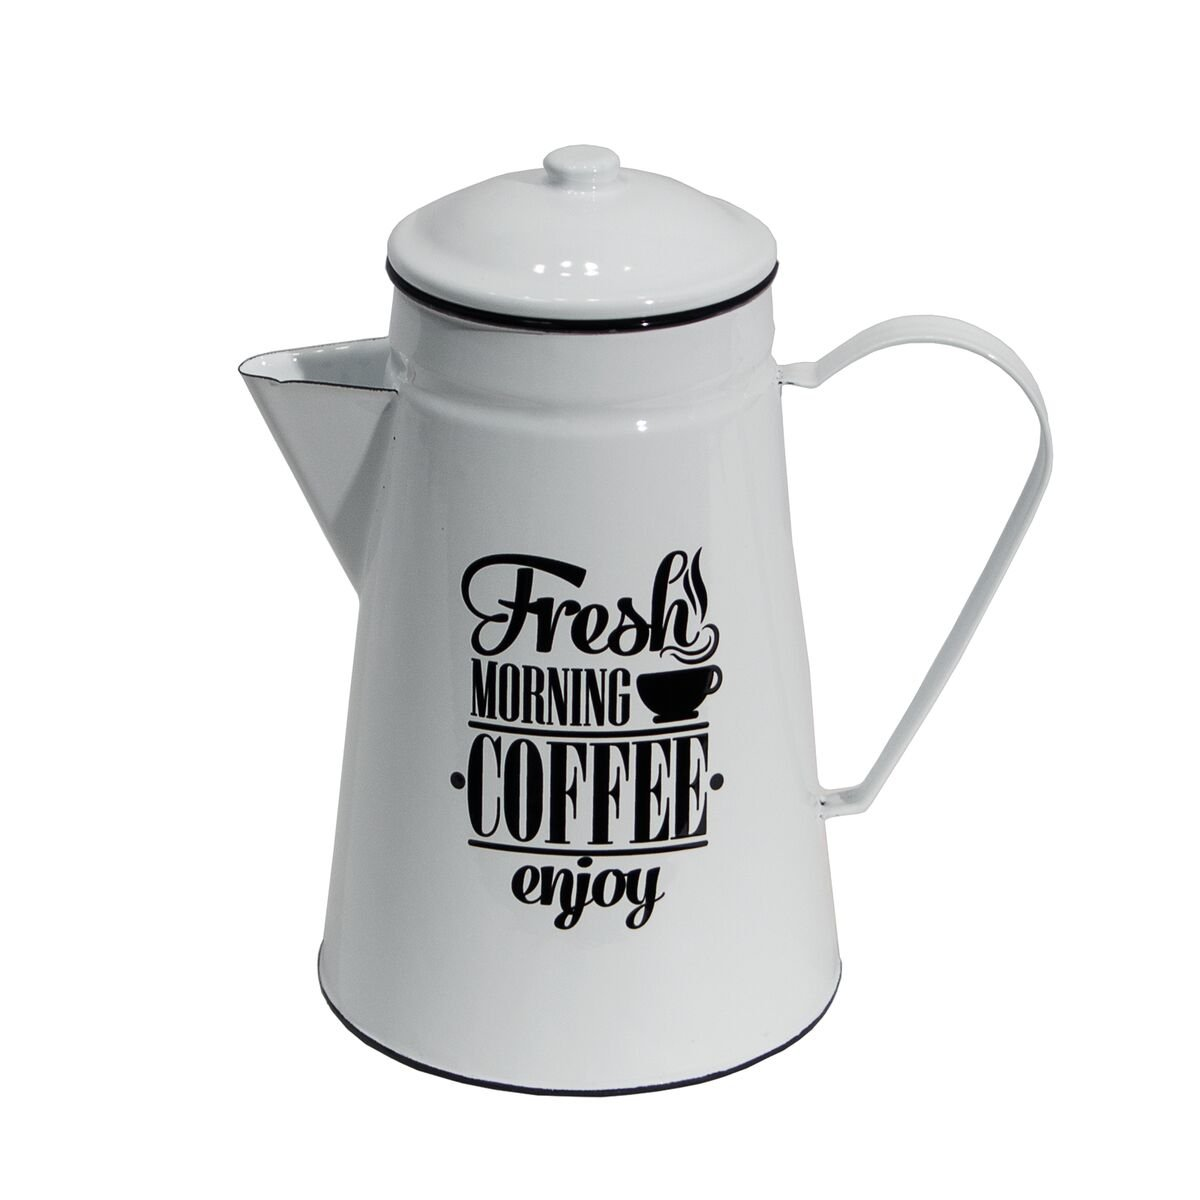 Vintage Inspired White Metal Enamel Decorative Coffee Pot with Black Trim and Lettering Fresh Morning Coffee' Enamelware Server